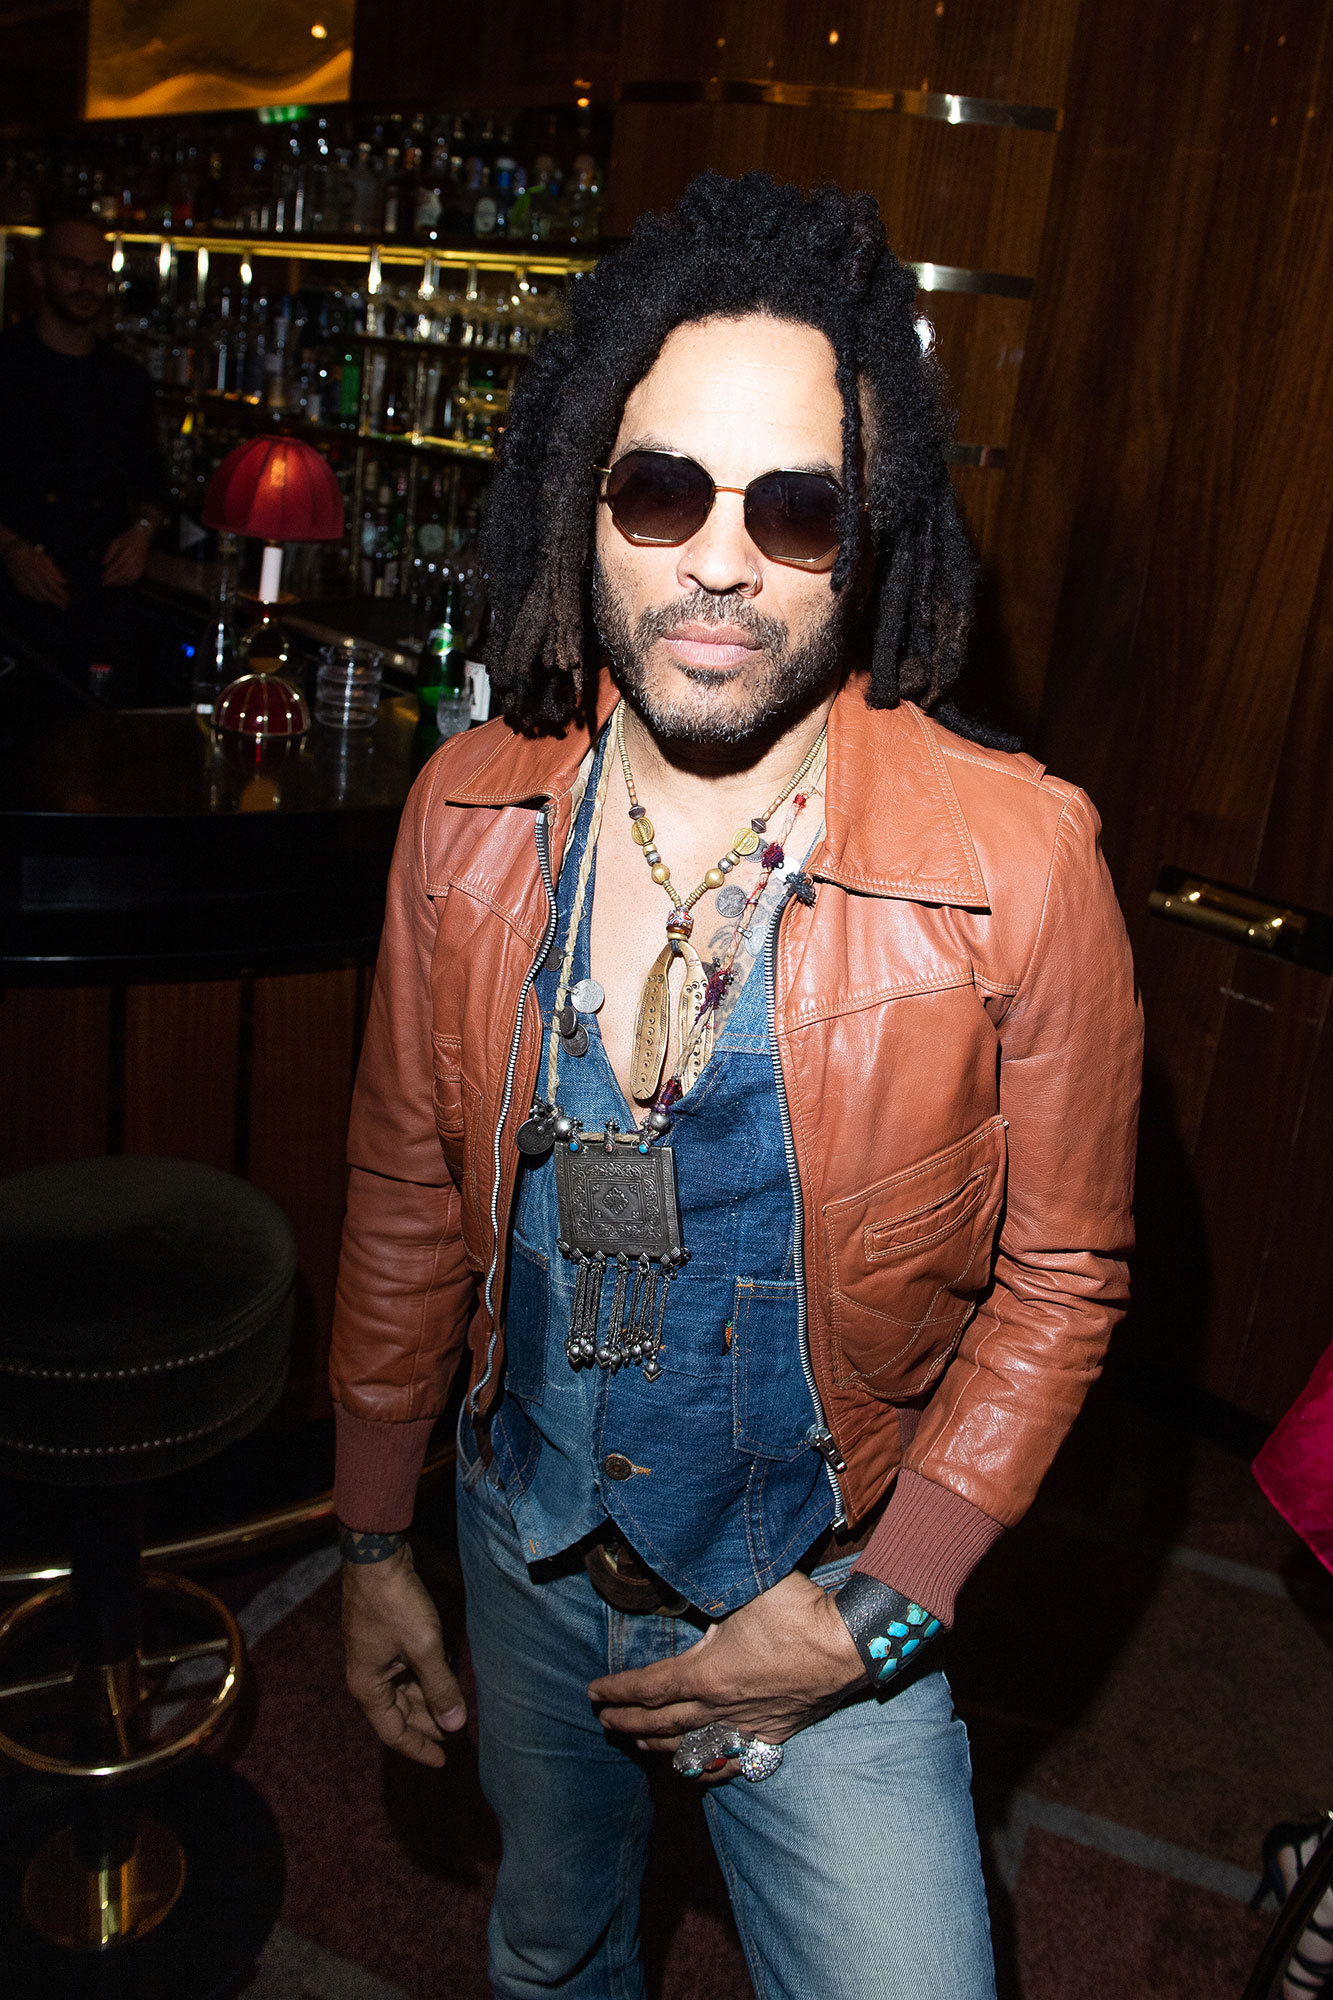 Lenny Kravitz Brown Leather Jacket Sunglasses Explore Italy - Just days earlier, the couple was celebrating Zoë's wedding at Lenny's Paris home.